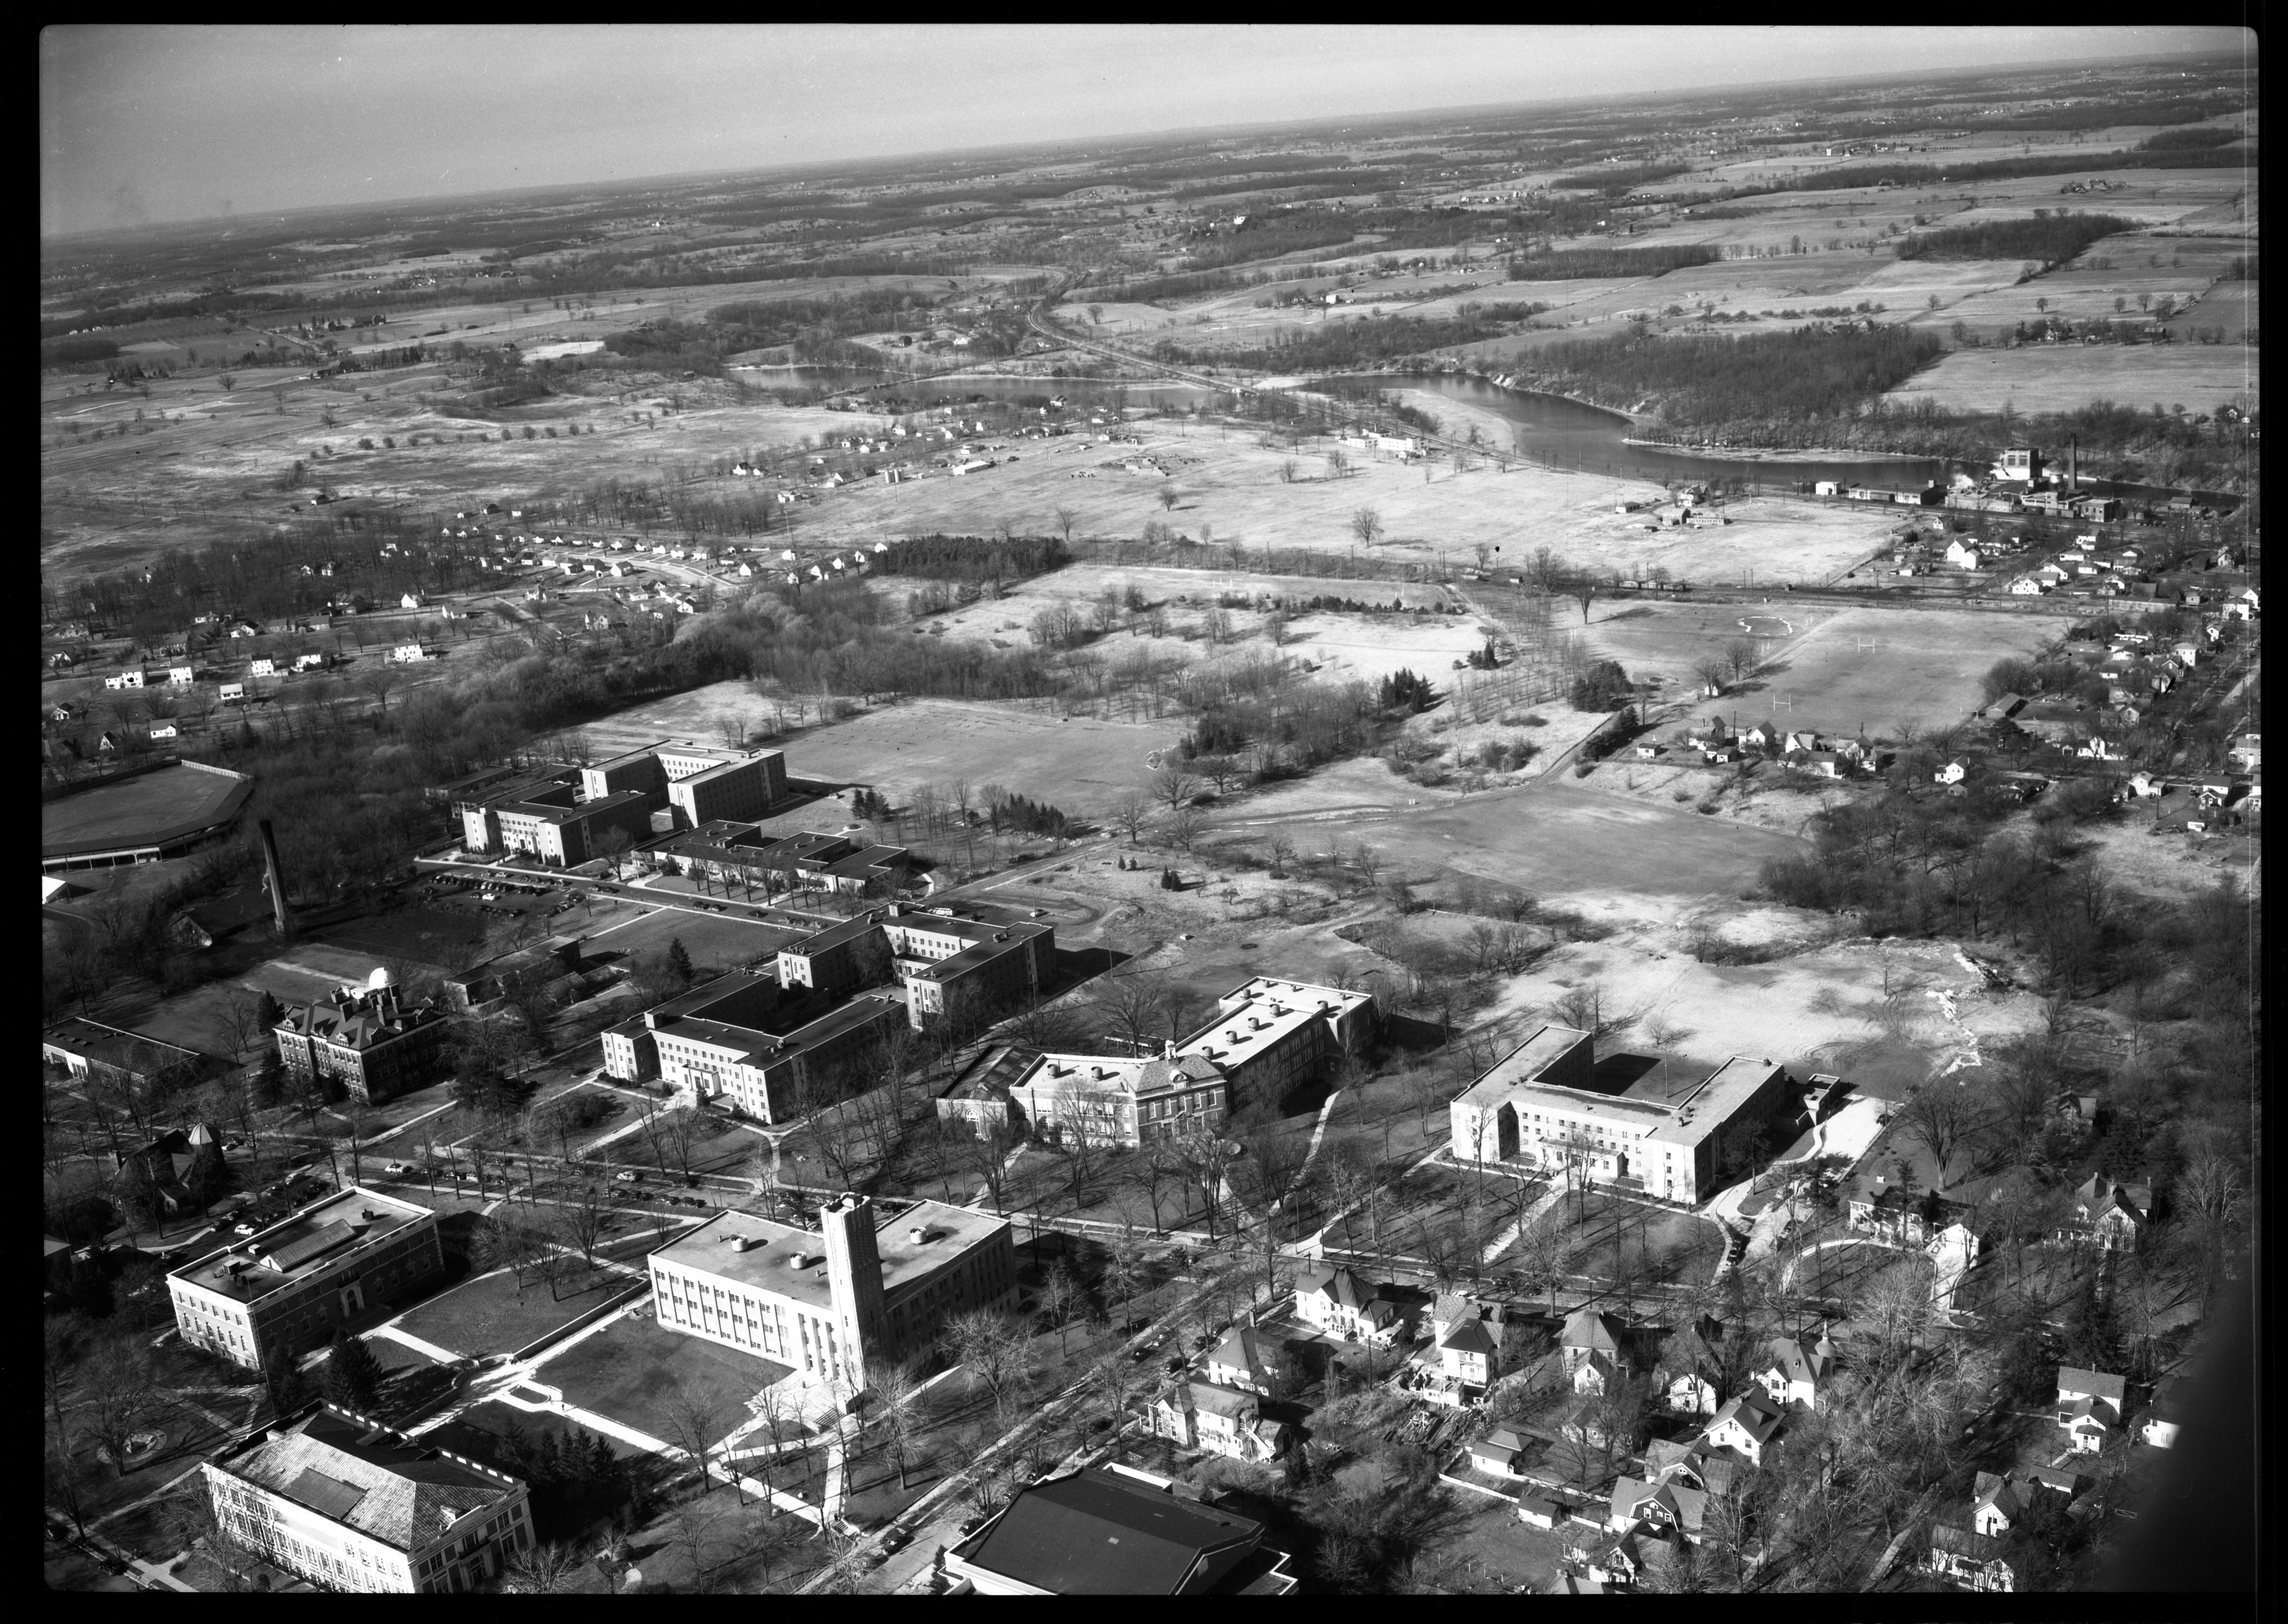 Aerial Photograph of the State Normal College Golf Course, Ypsilanti, February 1950 image